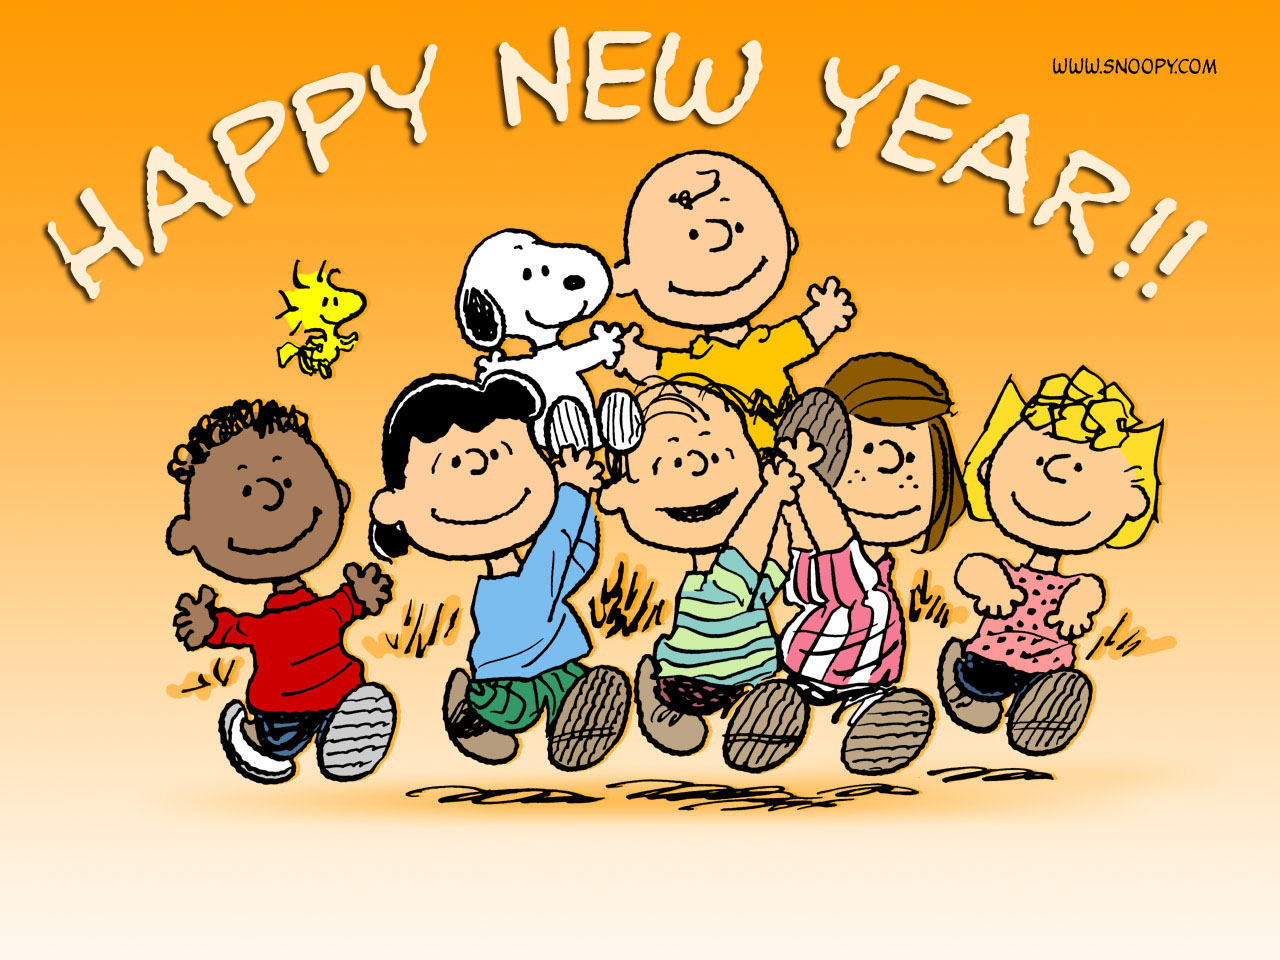 new new year sms 140 character funny new year sms sweet and nice new . 1280 x 960.Funny Happy New Years E-cards